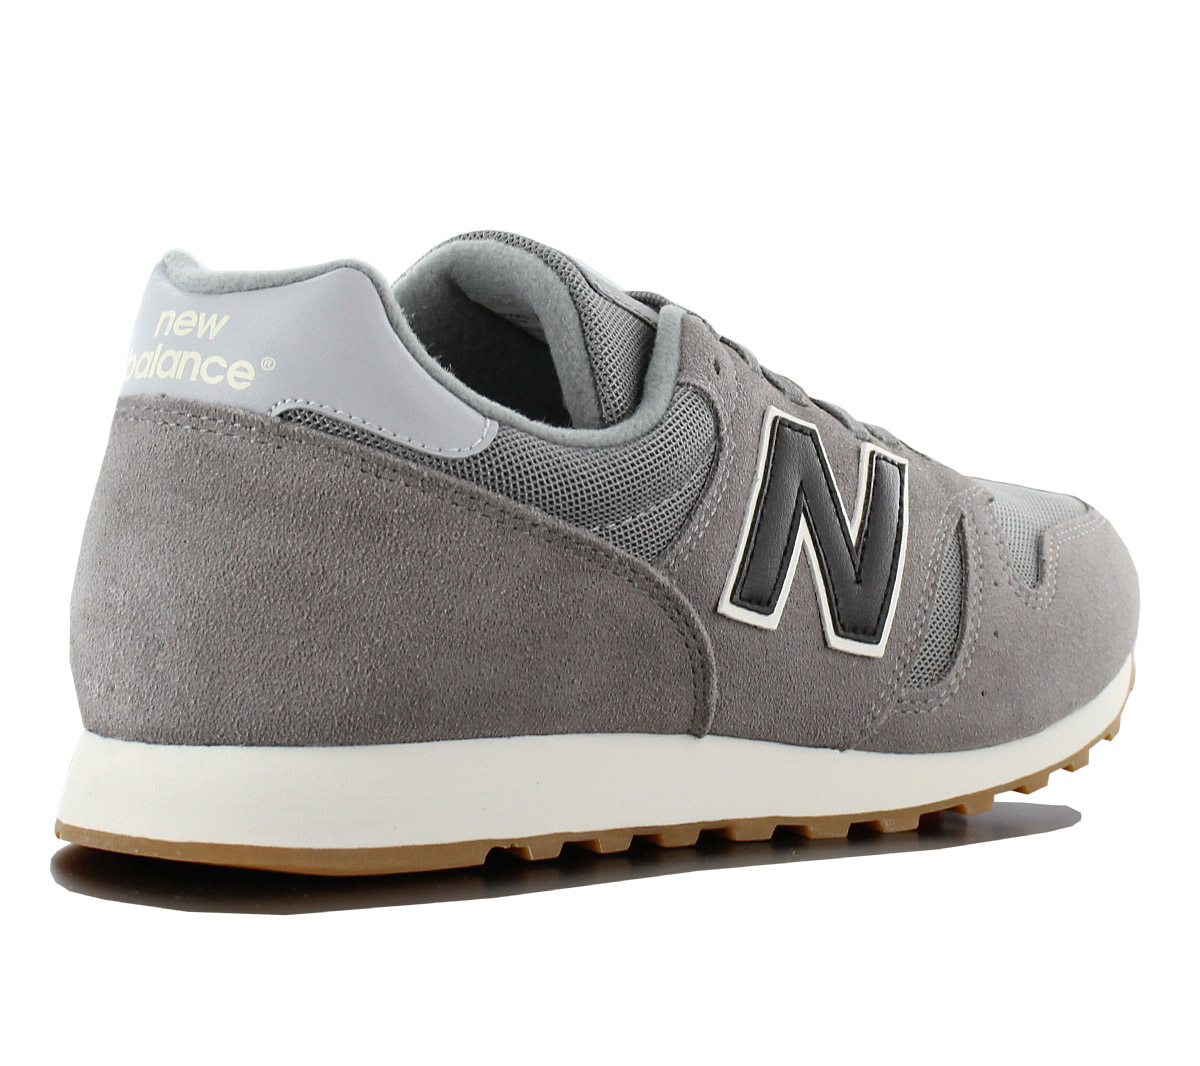 Details about New Balance Classics 373 Men's Sneakers Shoes Grey ML373GKG ML373 Sneakers